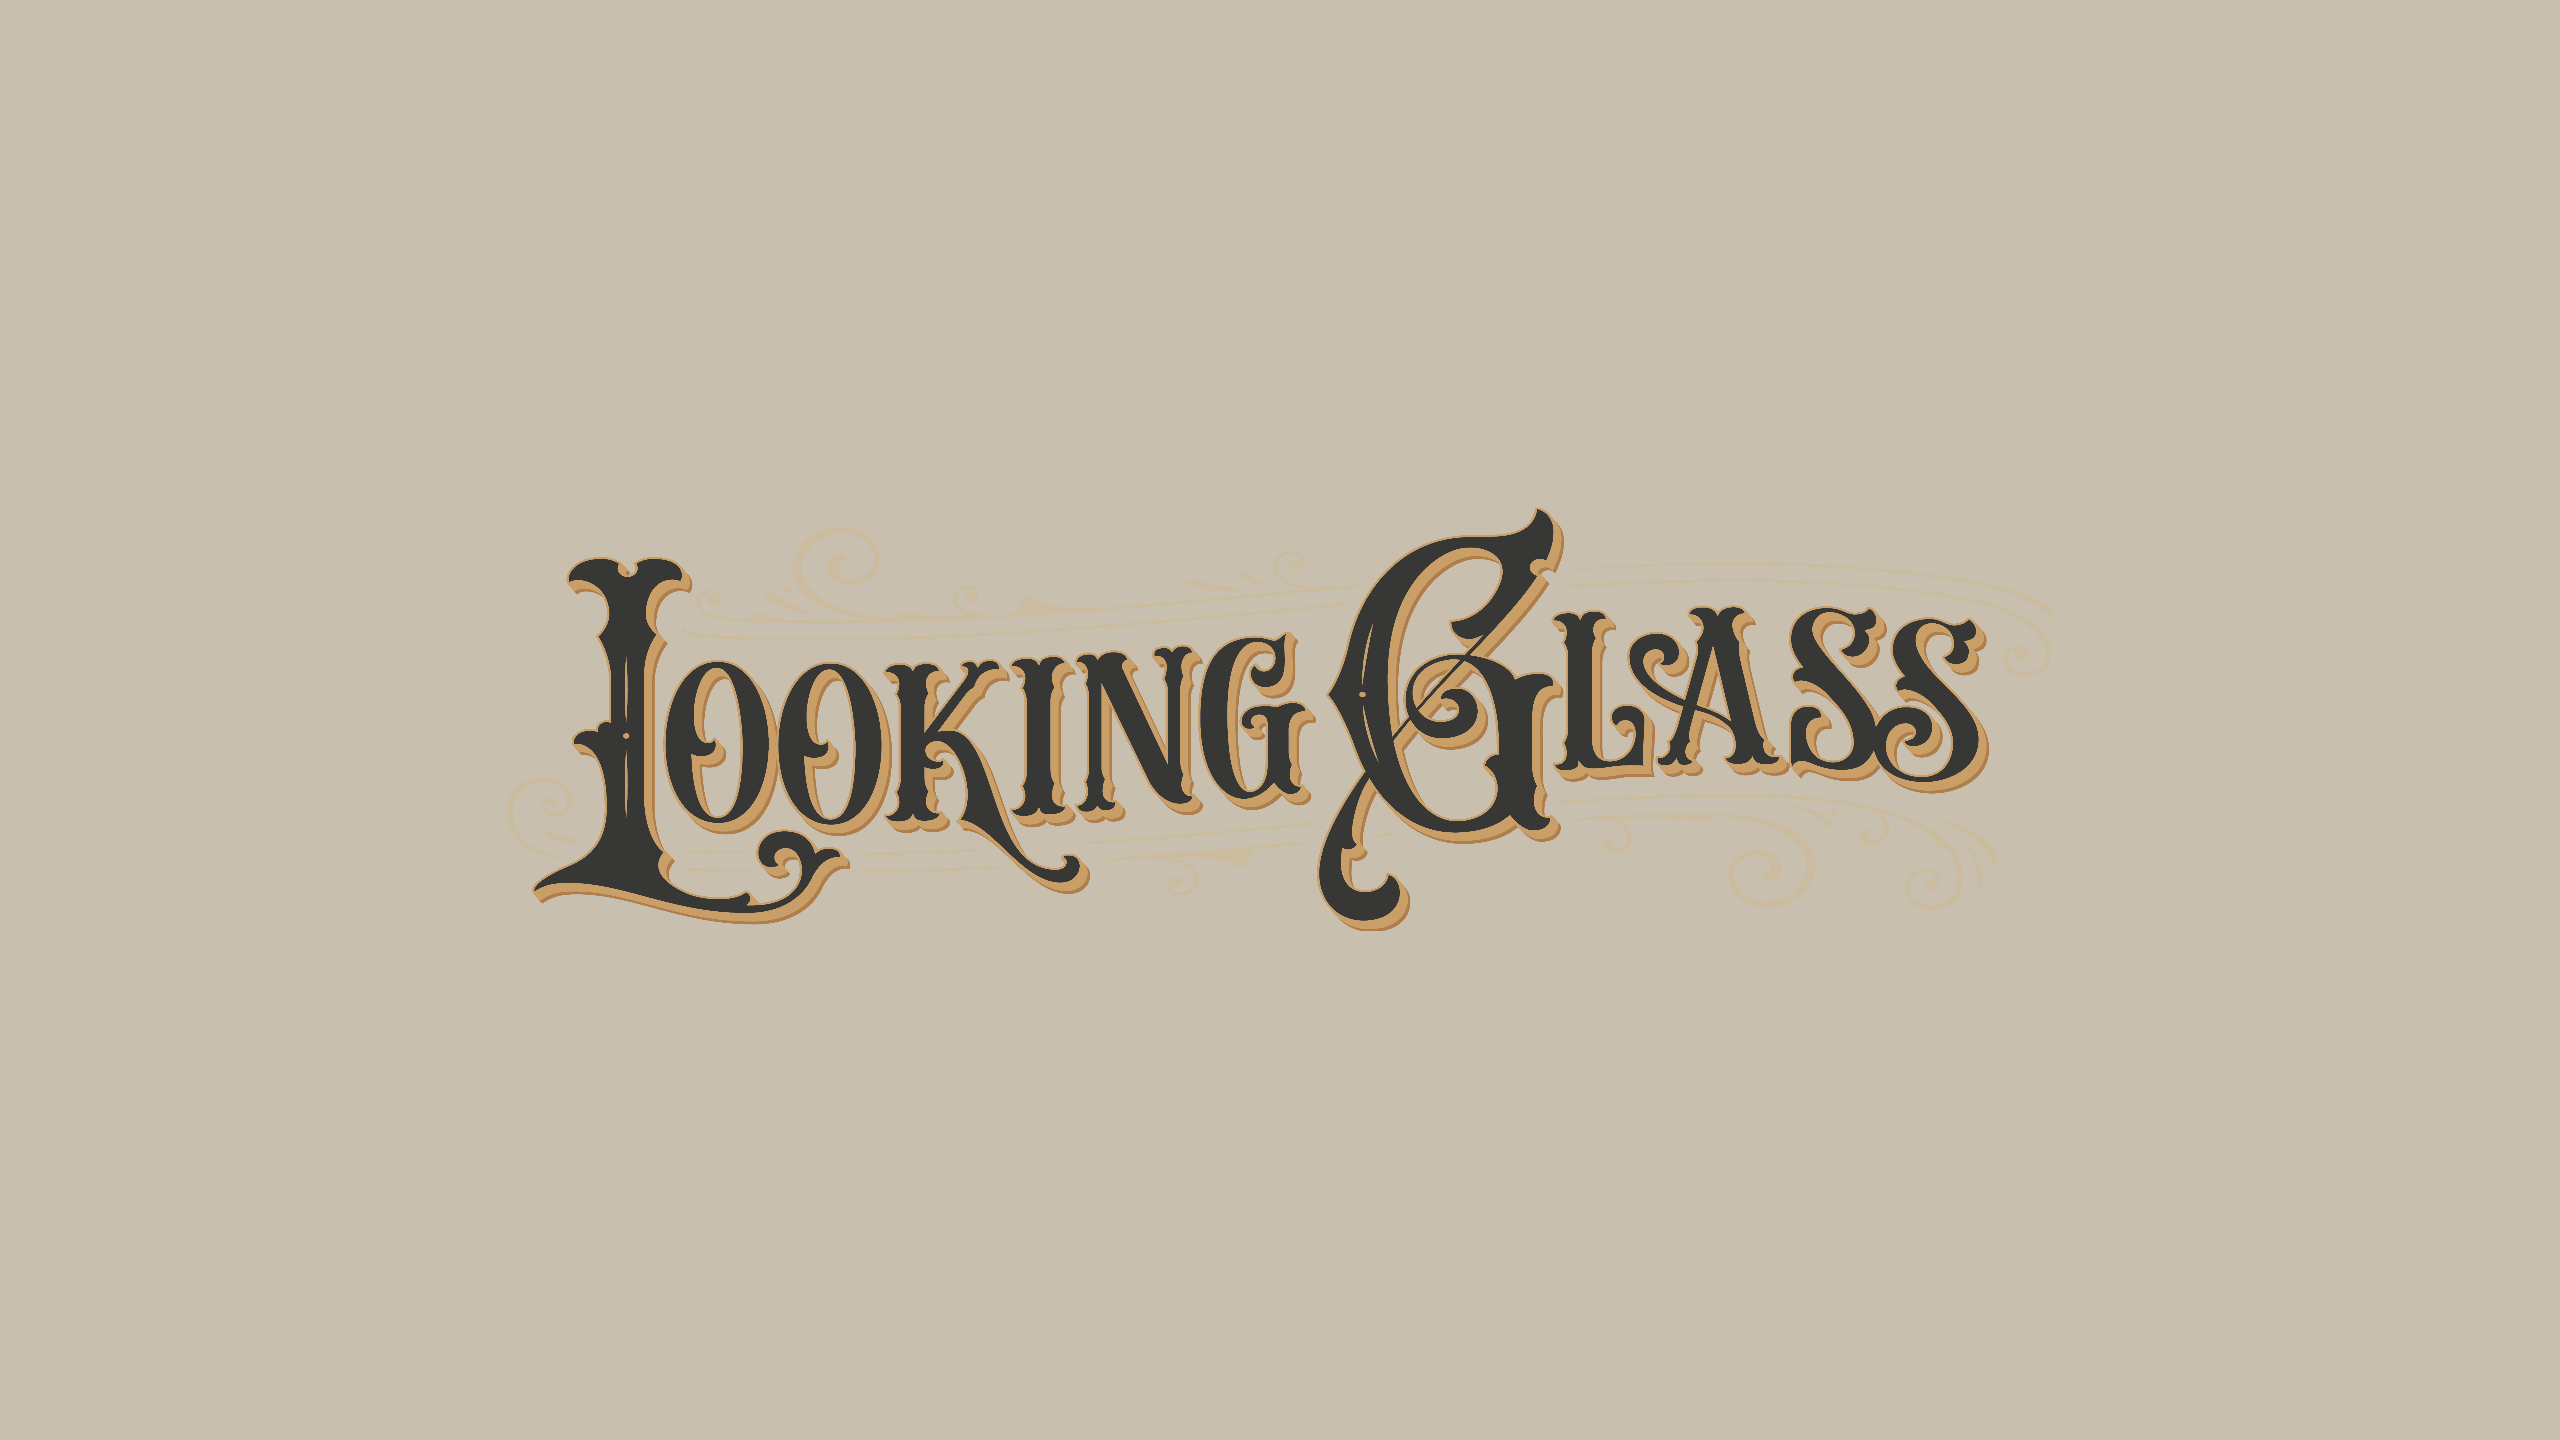 Looking Glass VR